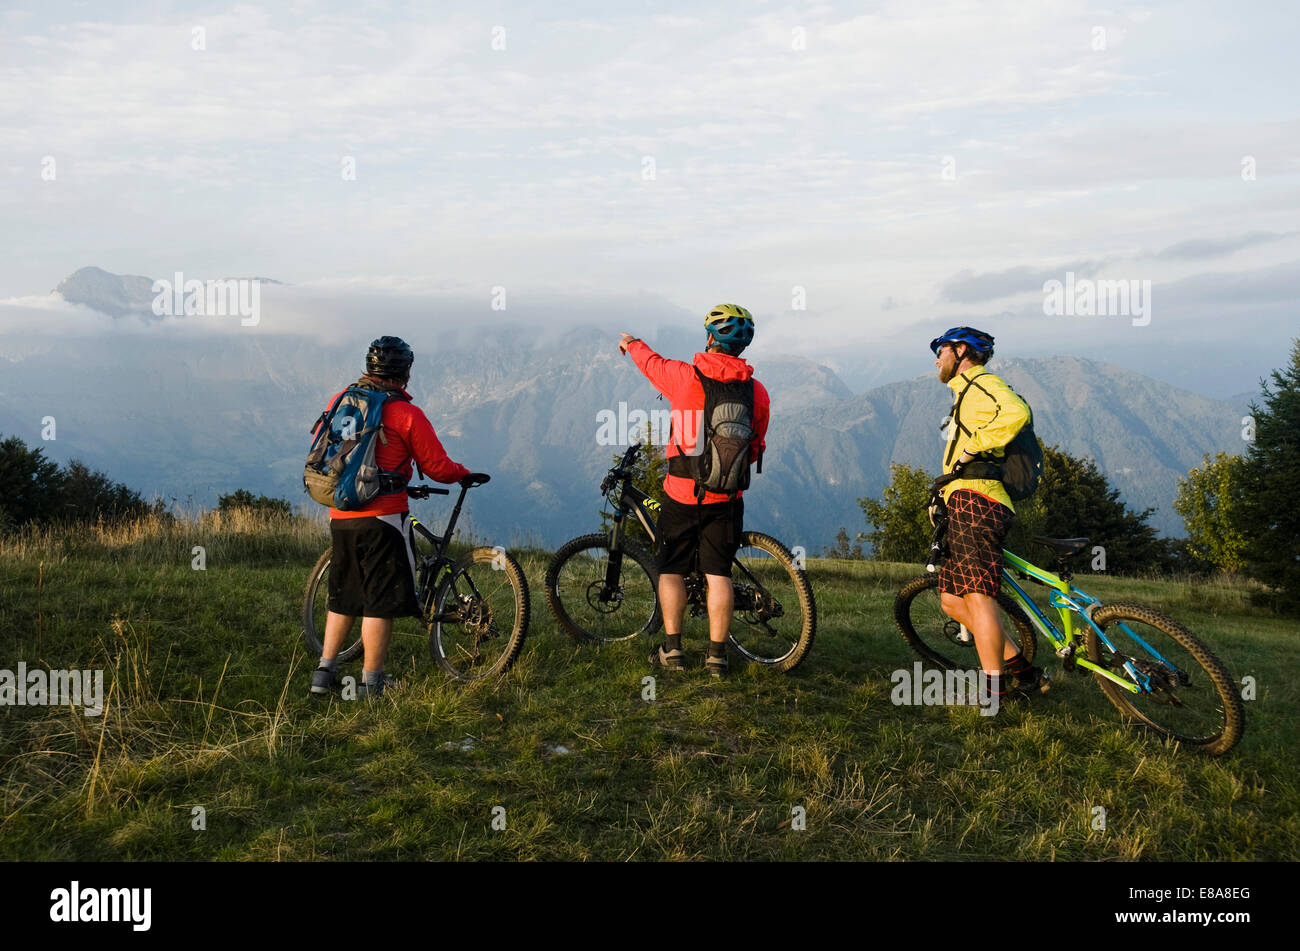 three mountain bikers looking at view, Kolovrat, Istria, Slovenia - Stock Image